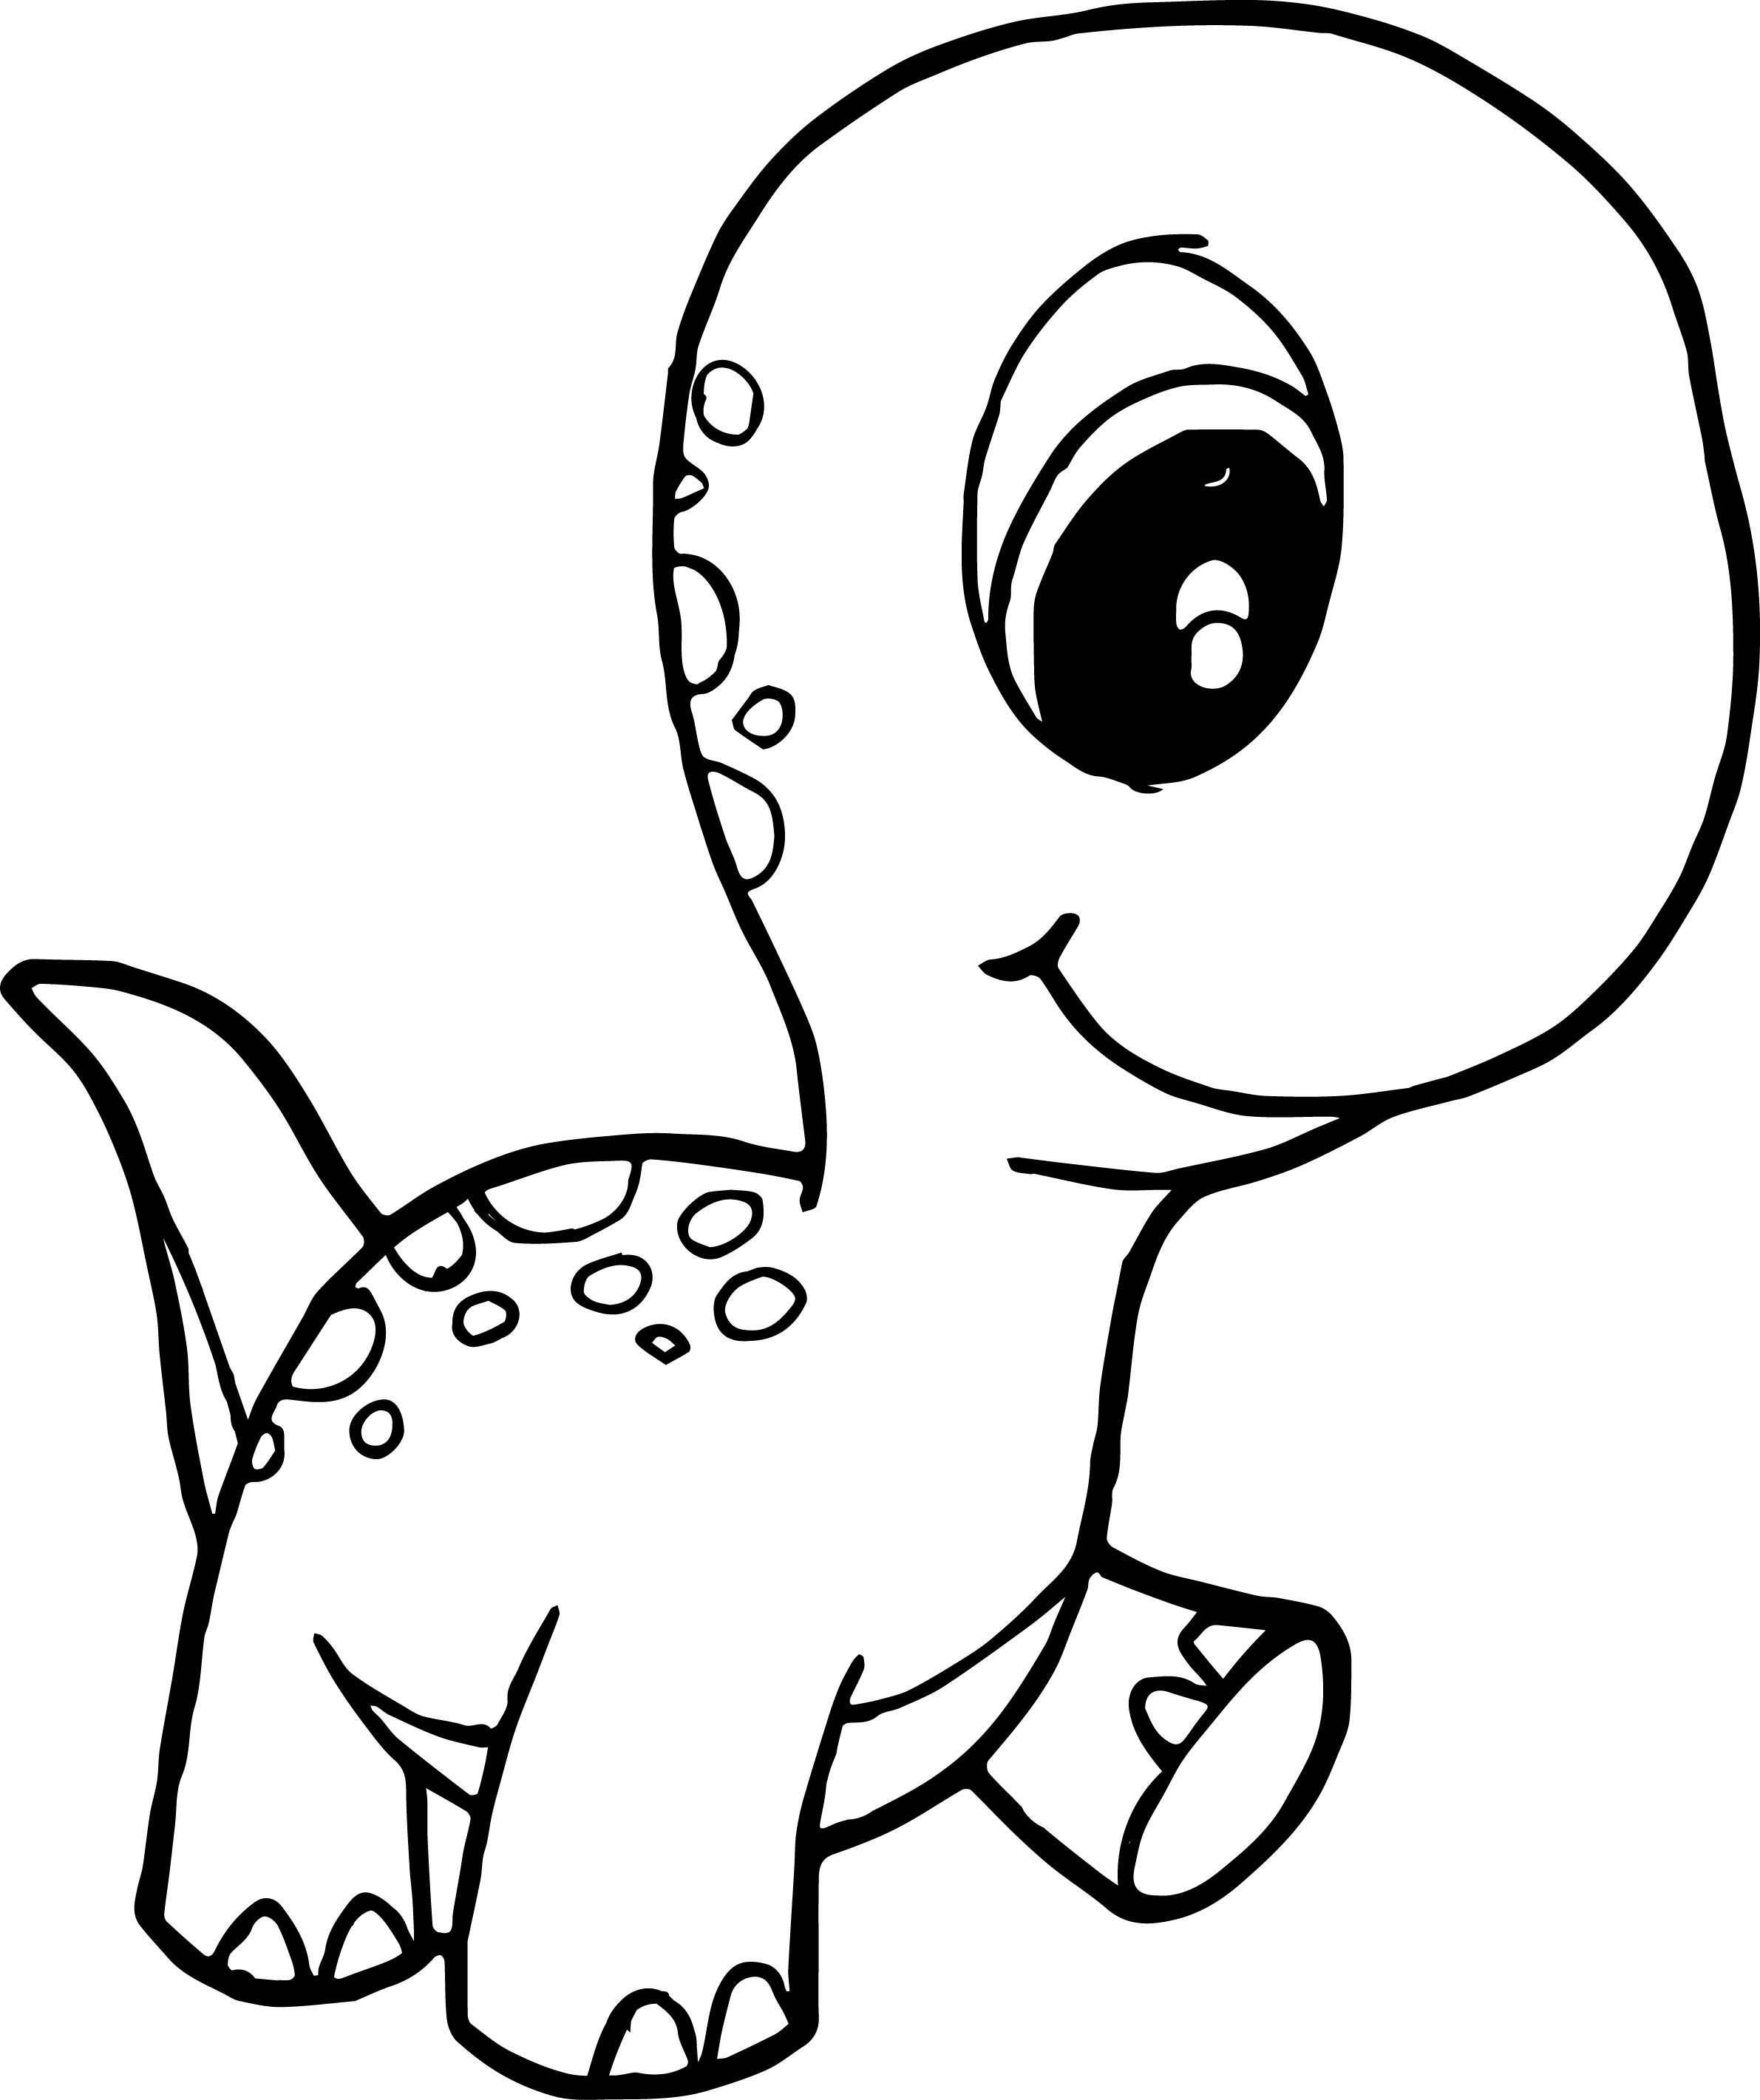 Cute dinosaurs coloring pages - a-k-b.info